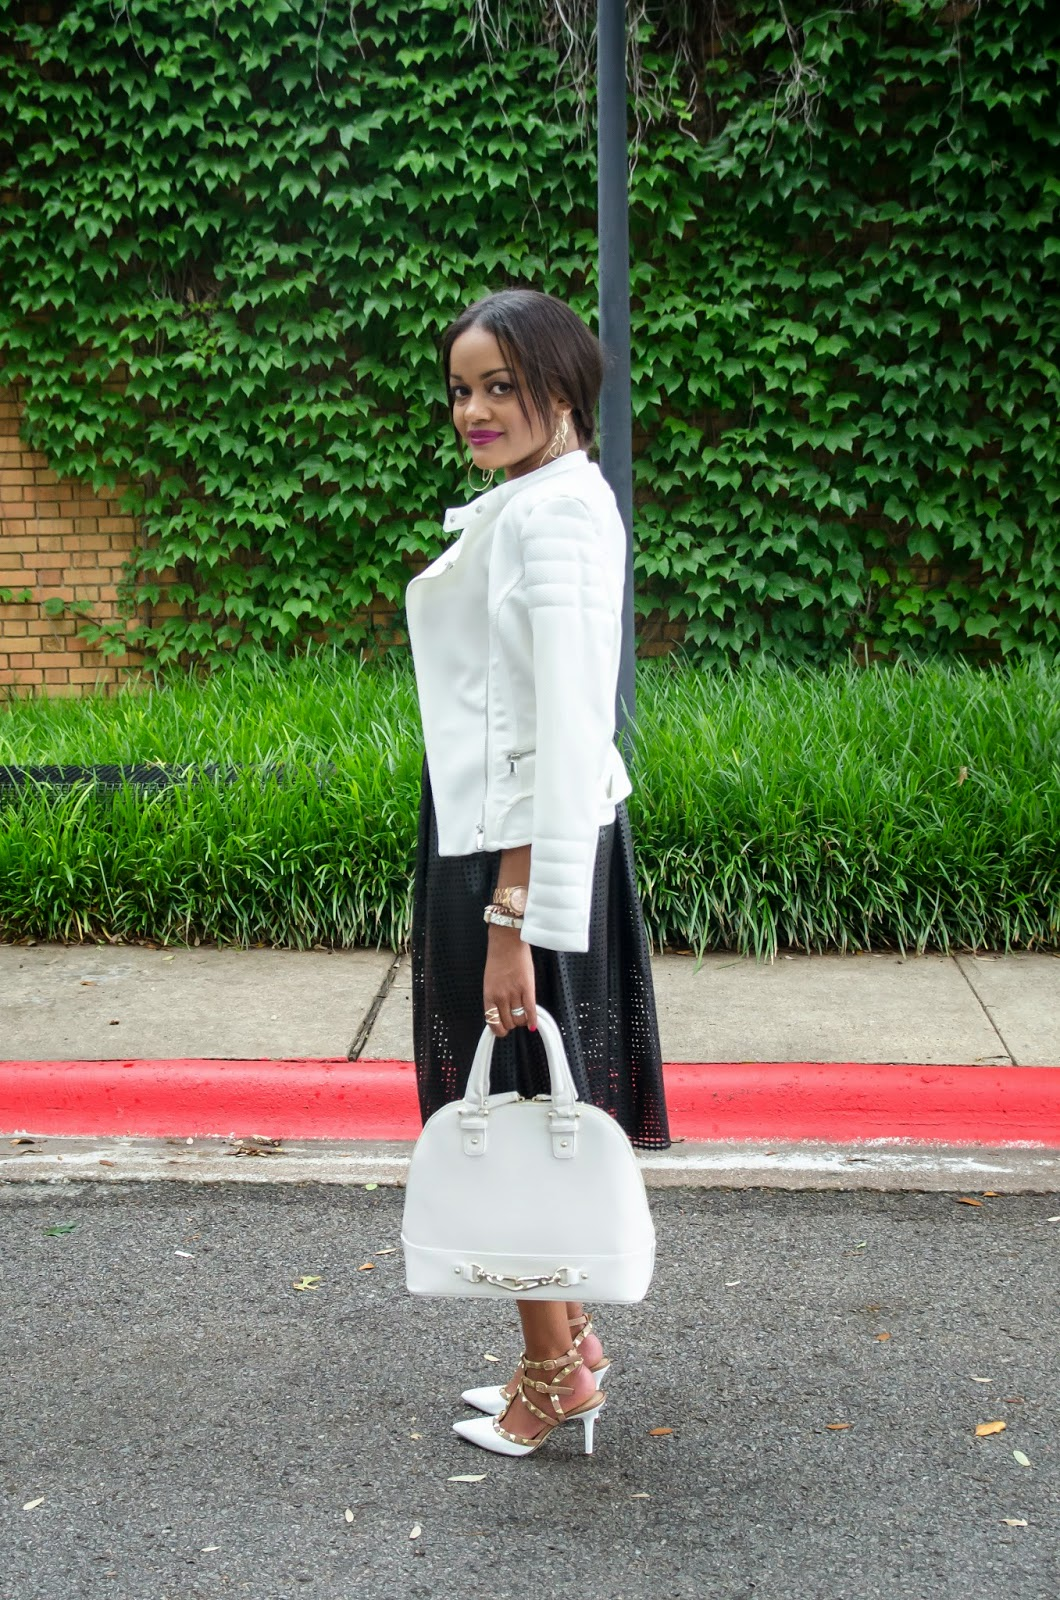 black and white outfit, leather outfit, leather skirt, leather perforated skirt, just fab handbag, white handbag, valentino rockstud, valentino inspired rocketed, moto jacket, dallas fashion, fashion blogger, dallas fashion blogger, detroit fashion blogger, black fashion blogger, street style, spring fashion,